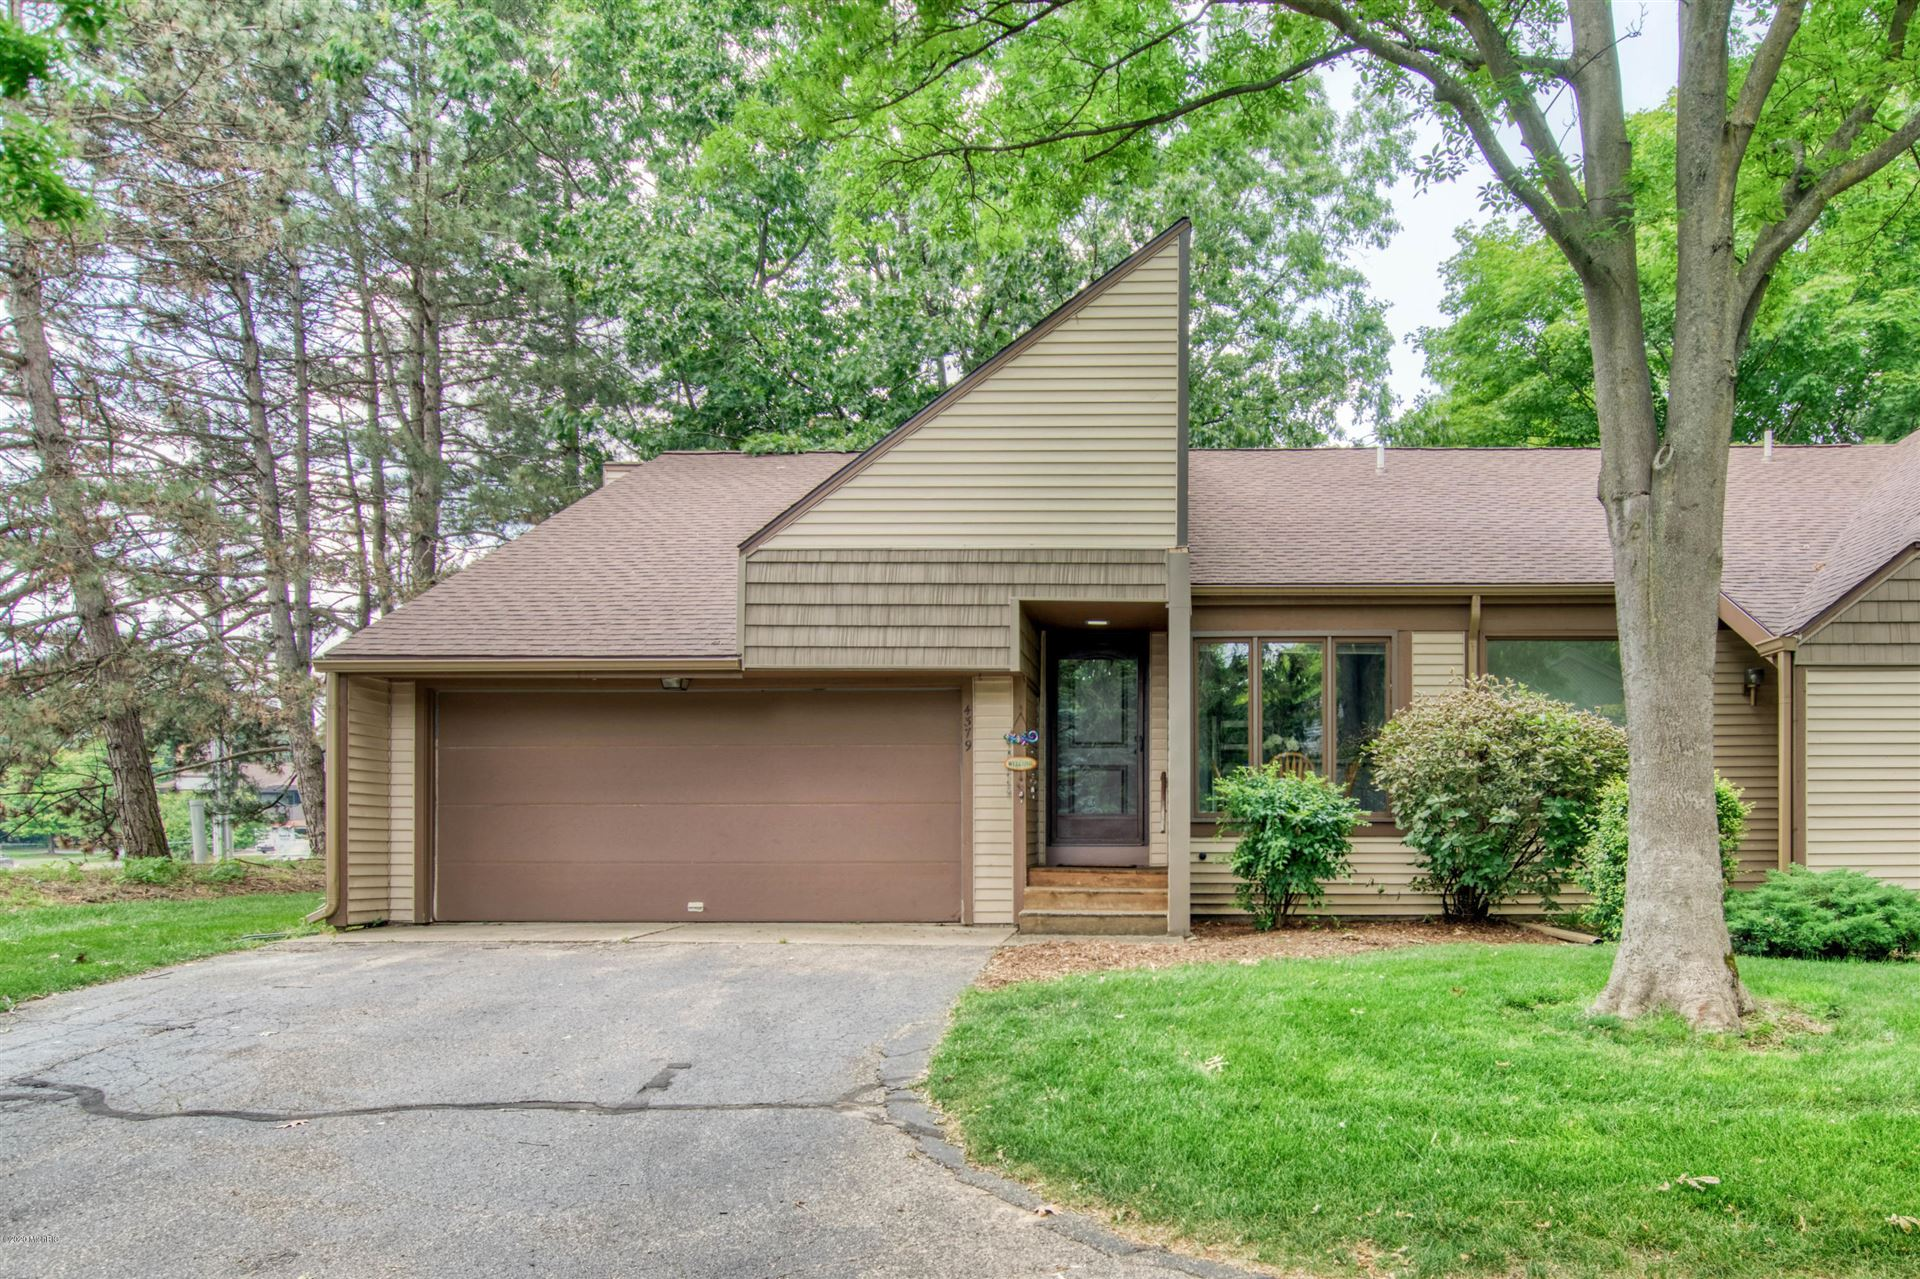 4379 Woods Trail SW #6, Wyoming, MI 49519 - #: 20025496